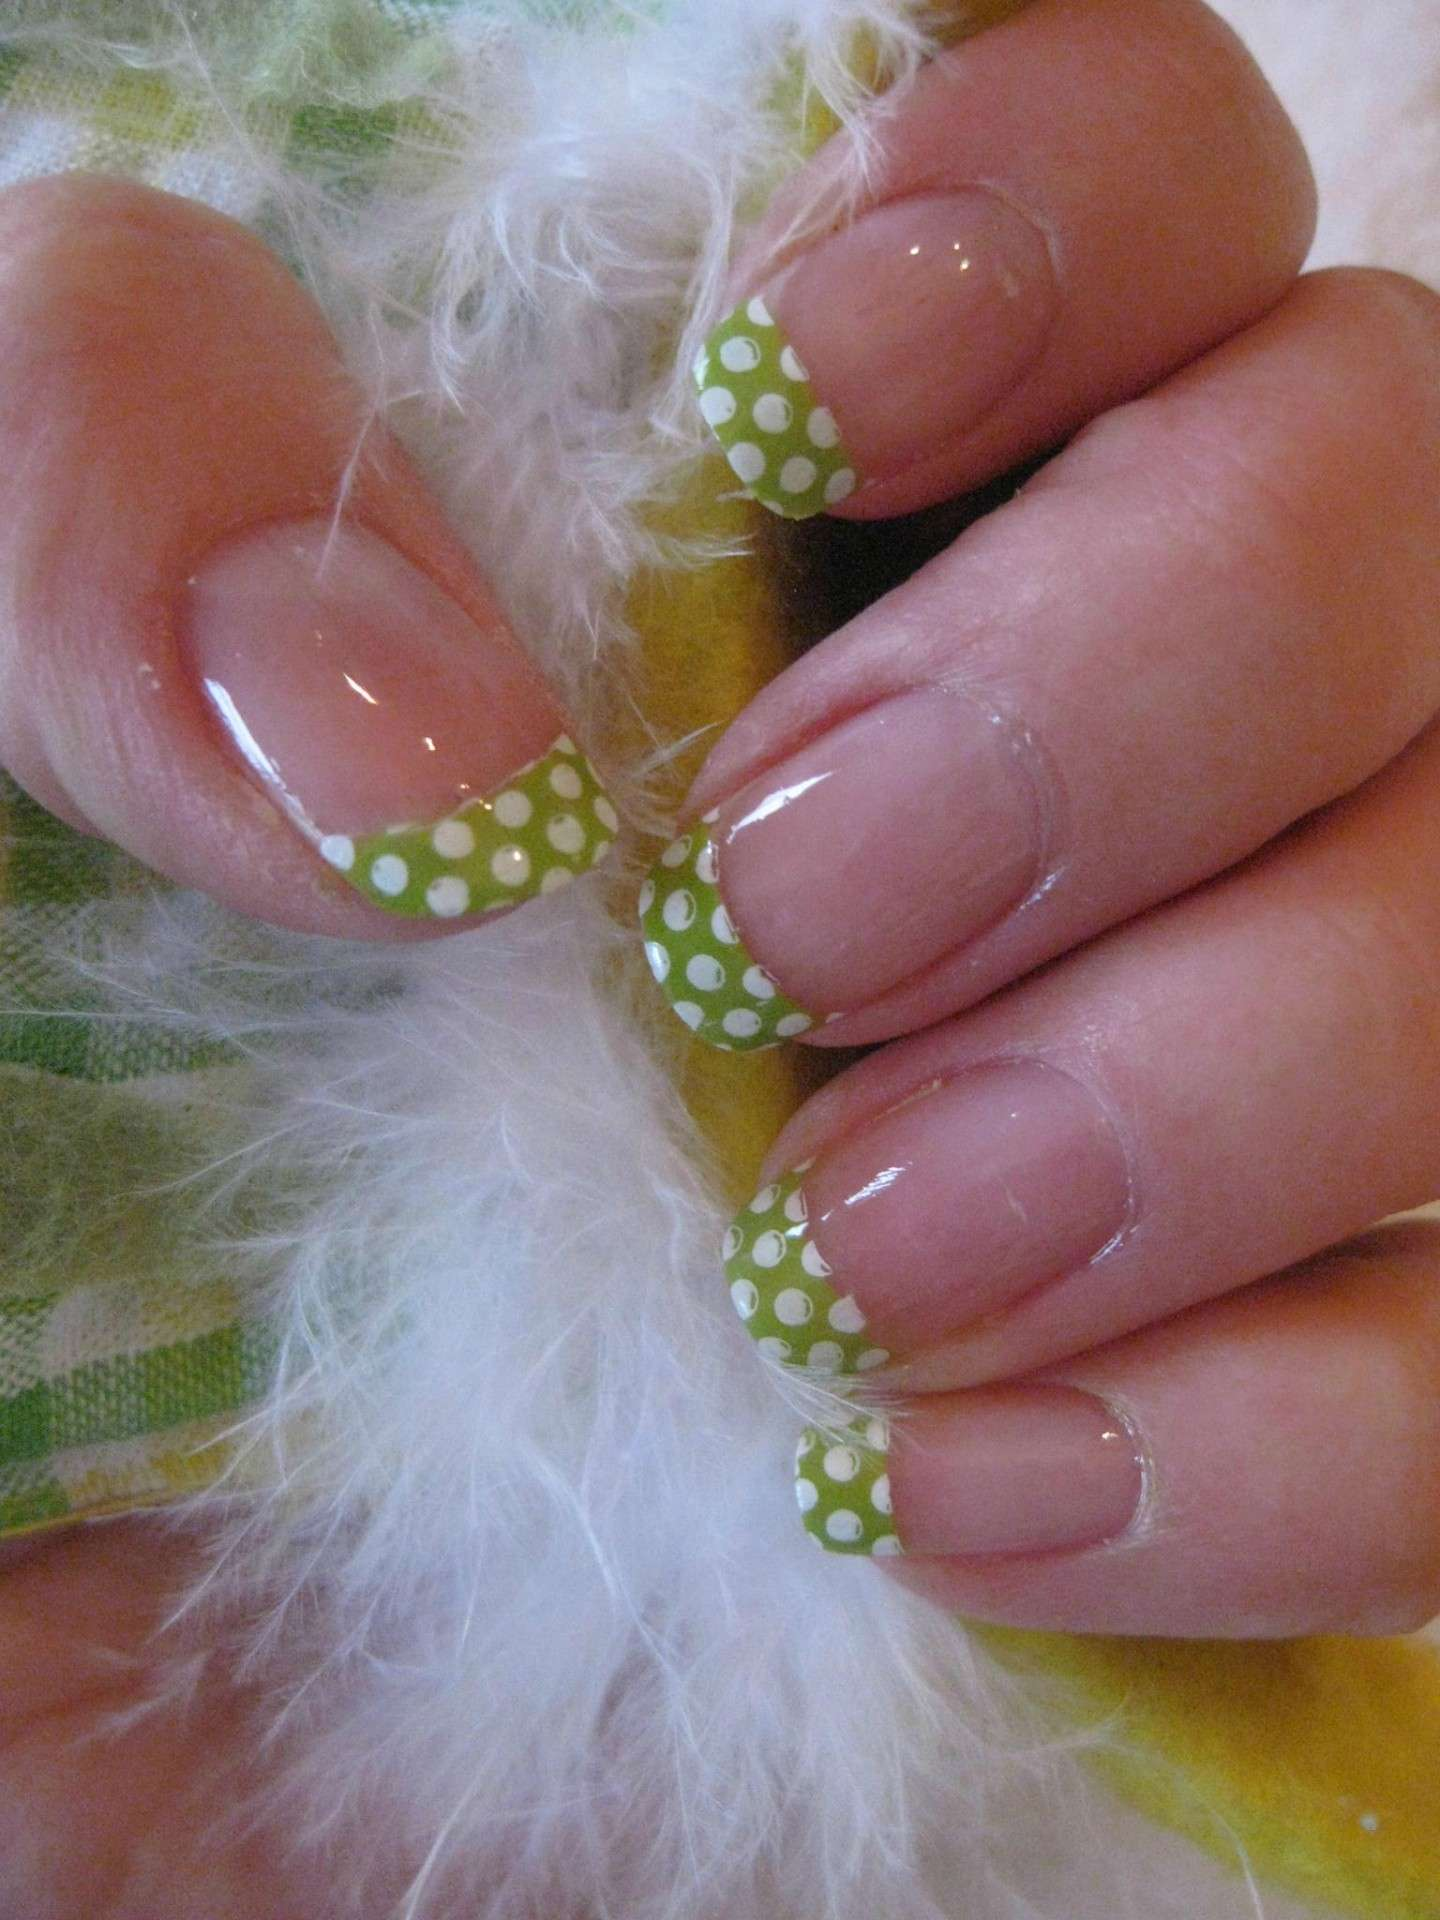 French manicure verde con pois bianchi